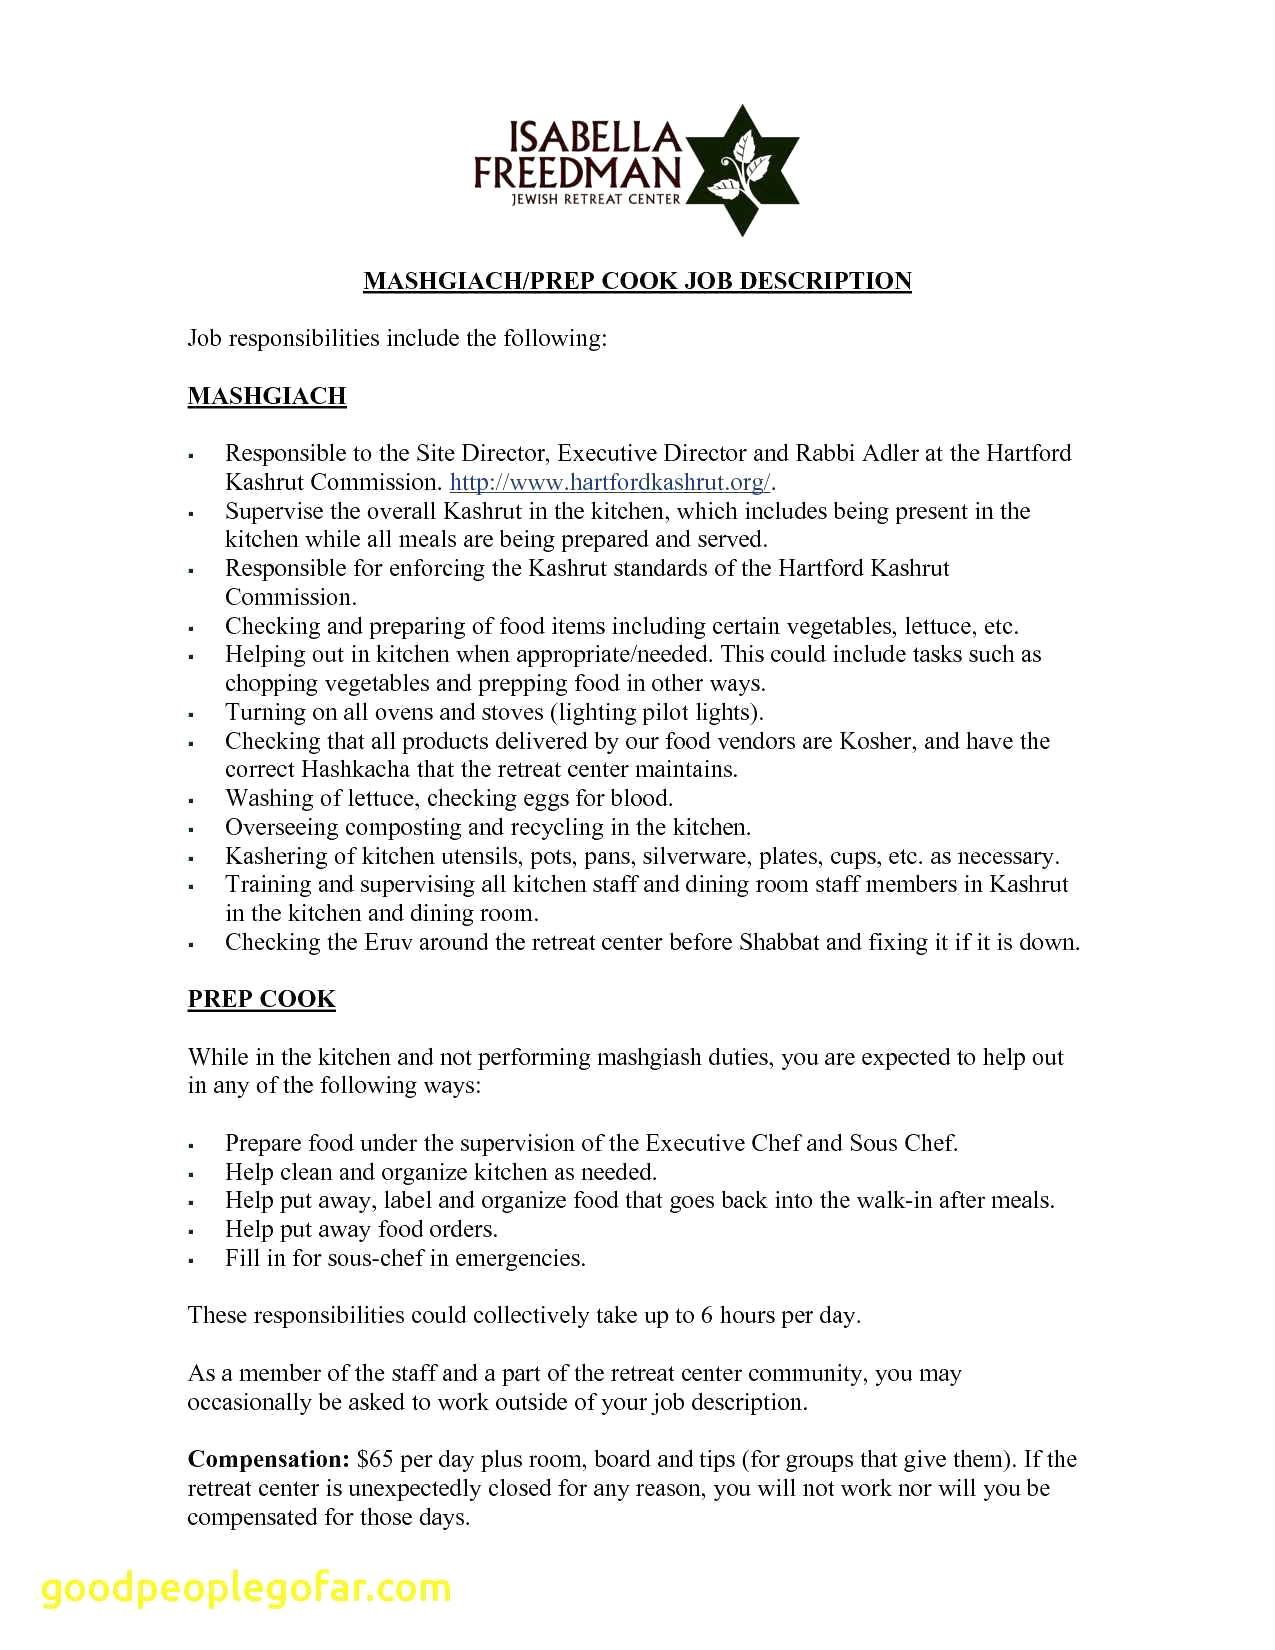 sales representative resume Collection-How to Write A Good Job Resume From Job Letter 0d Related Post 4-k